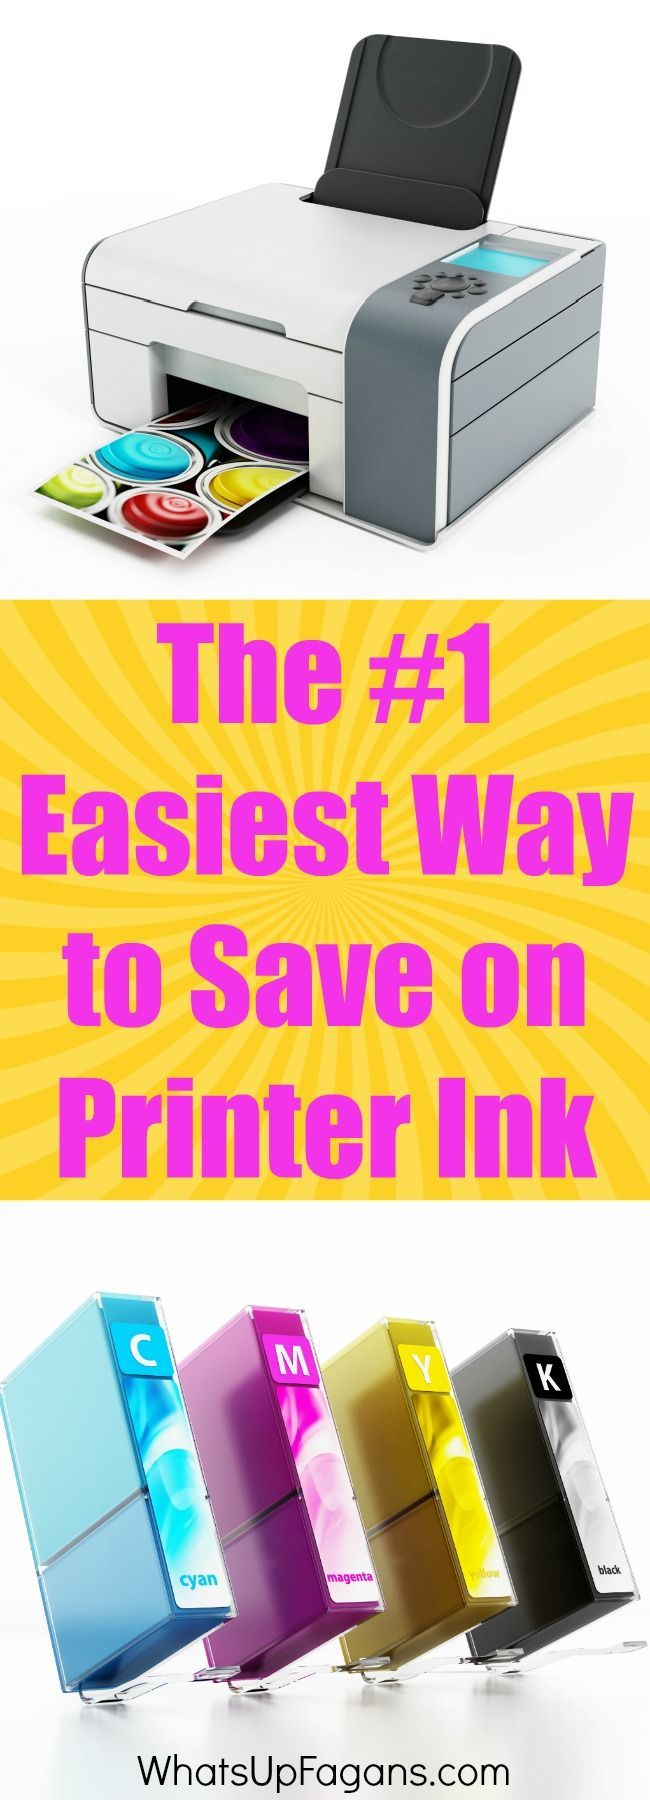 save money on printer ink   HP Instant Ink Program Overview and Review   saving money on printing costs   frugal living   cheap   thrifty   inexpensive   subscription service